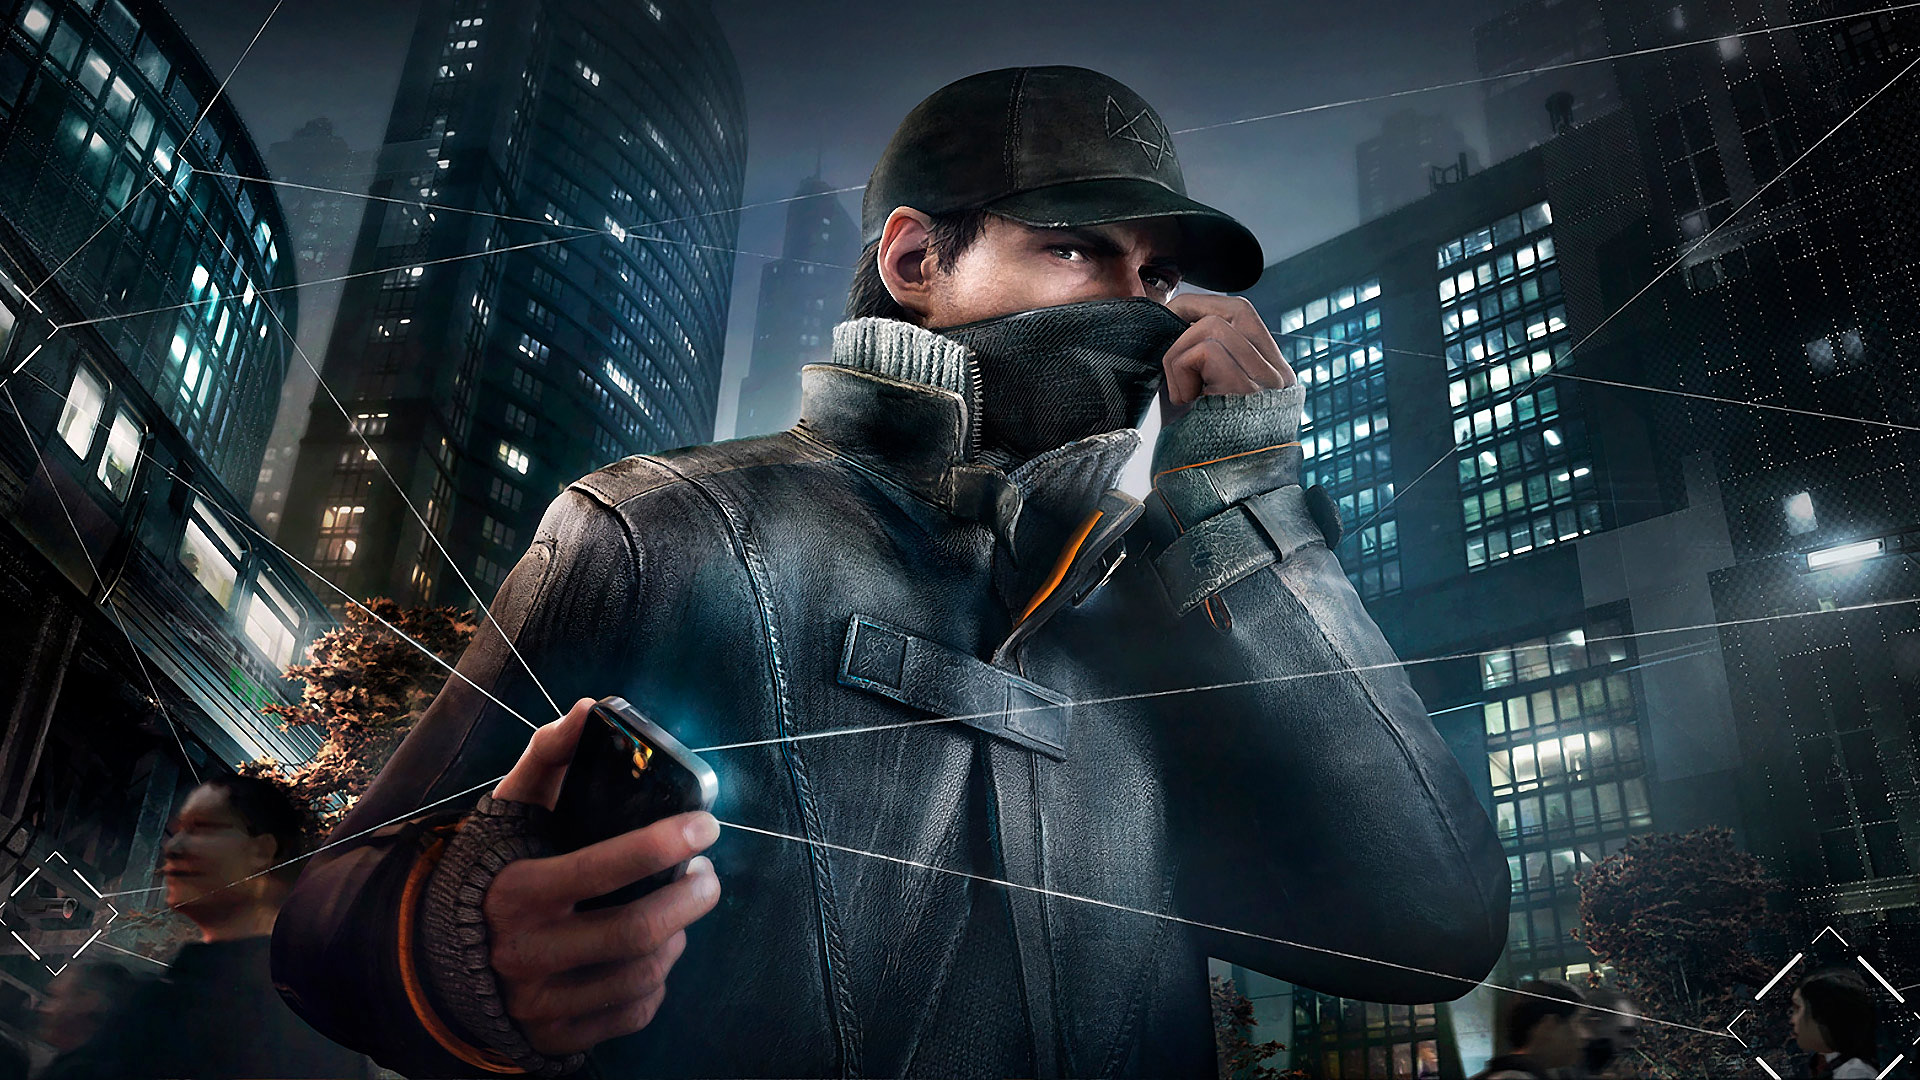 Watch Dogs On Playstation 4 Won T Be 1080p Confirms Ubisoft